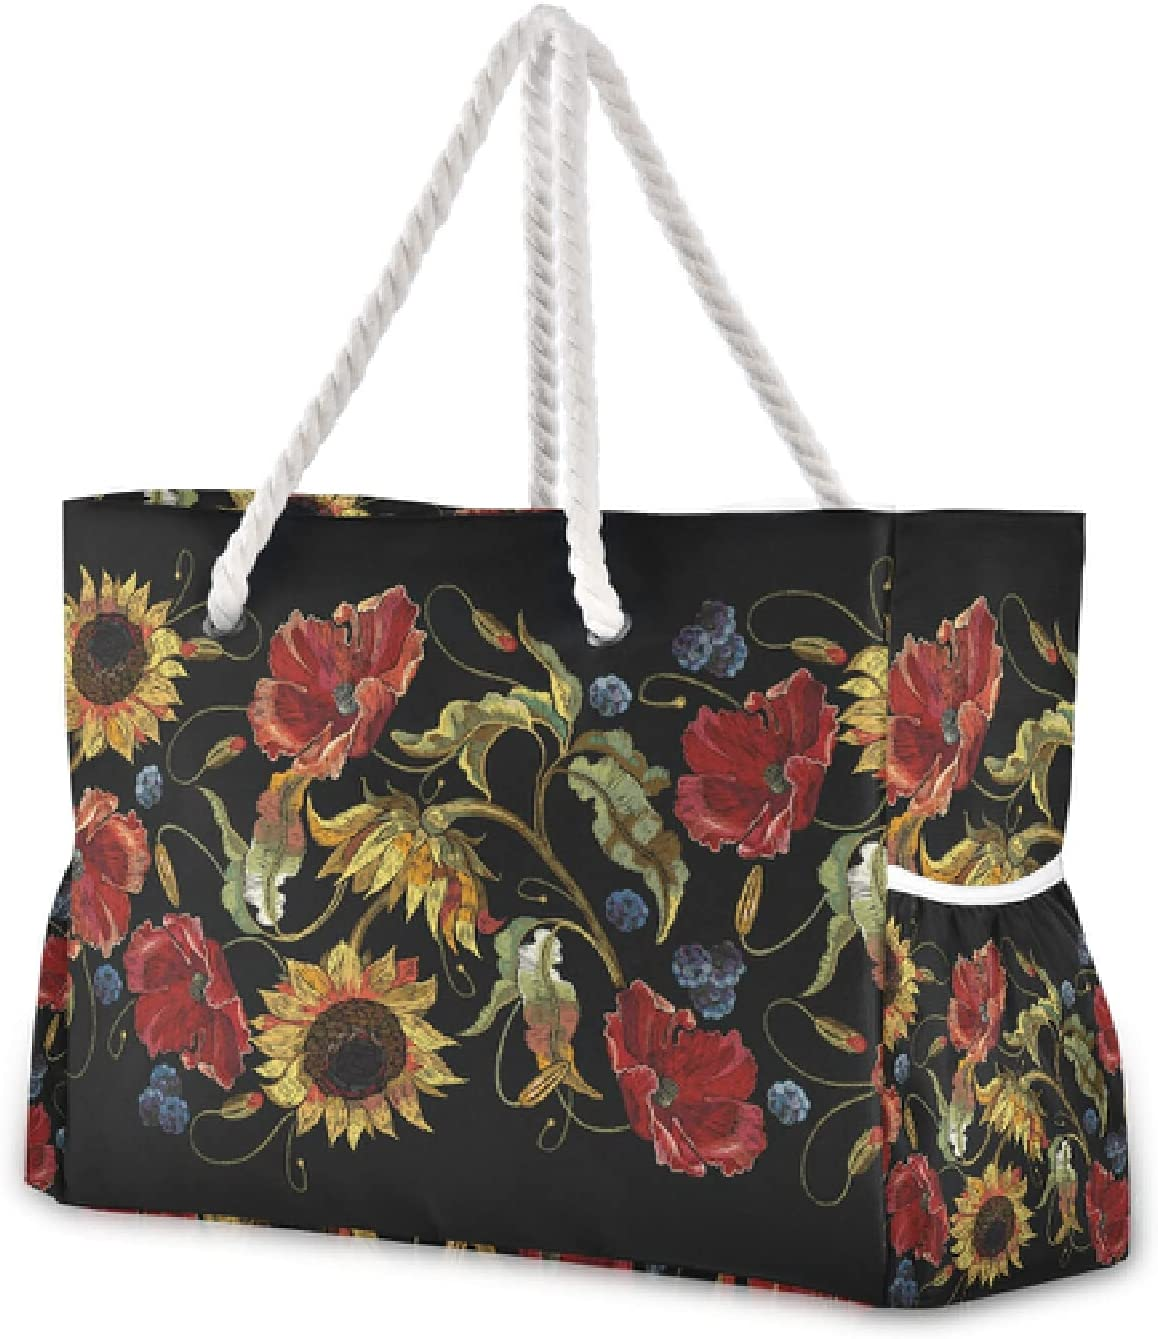 OTVEE Chic Red Poppy Sunflowers Bag Mesa Mall Large Travel Beach Tote Excellence